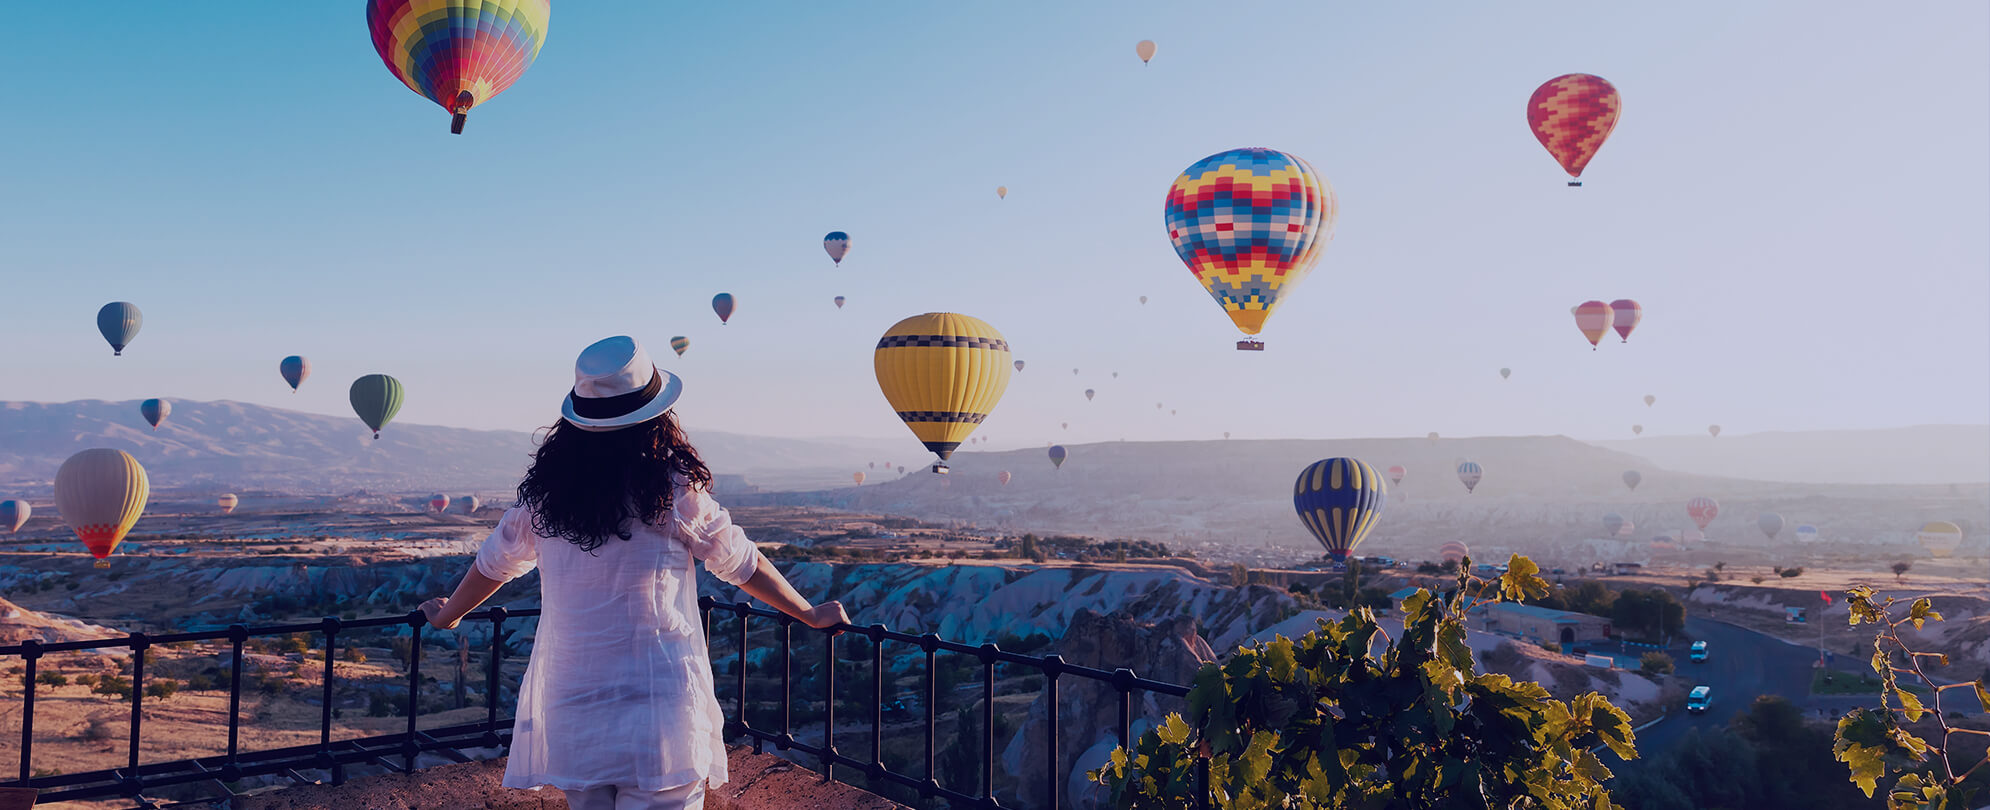 Woman in hat looking at hot airballoons